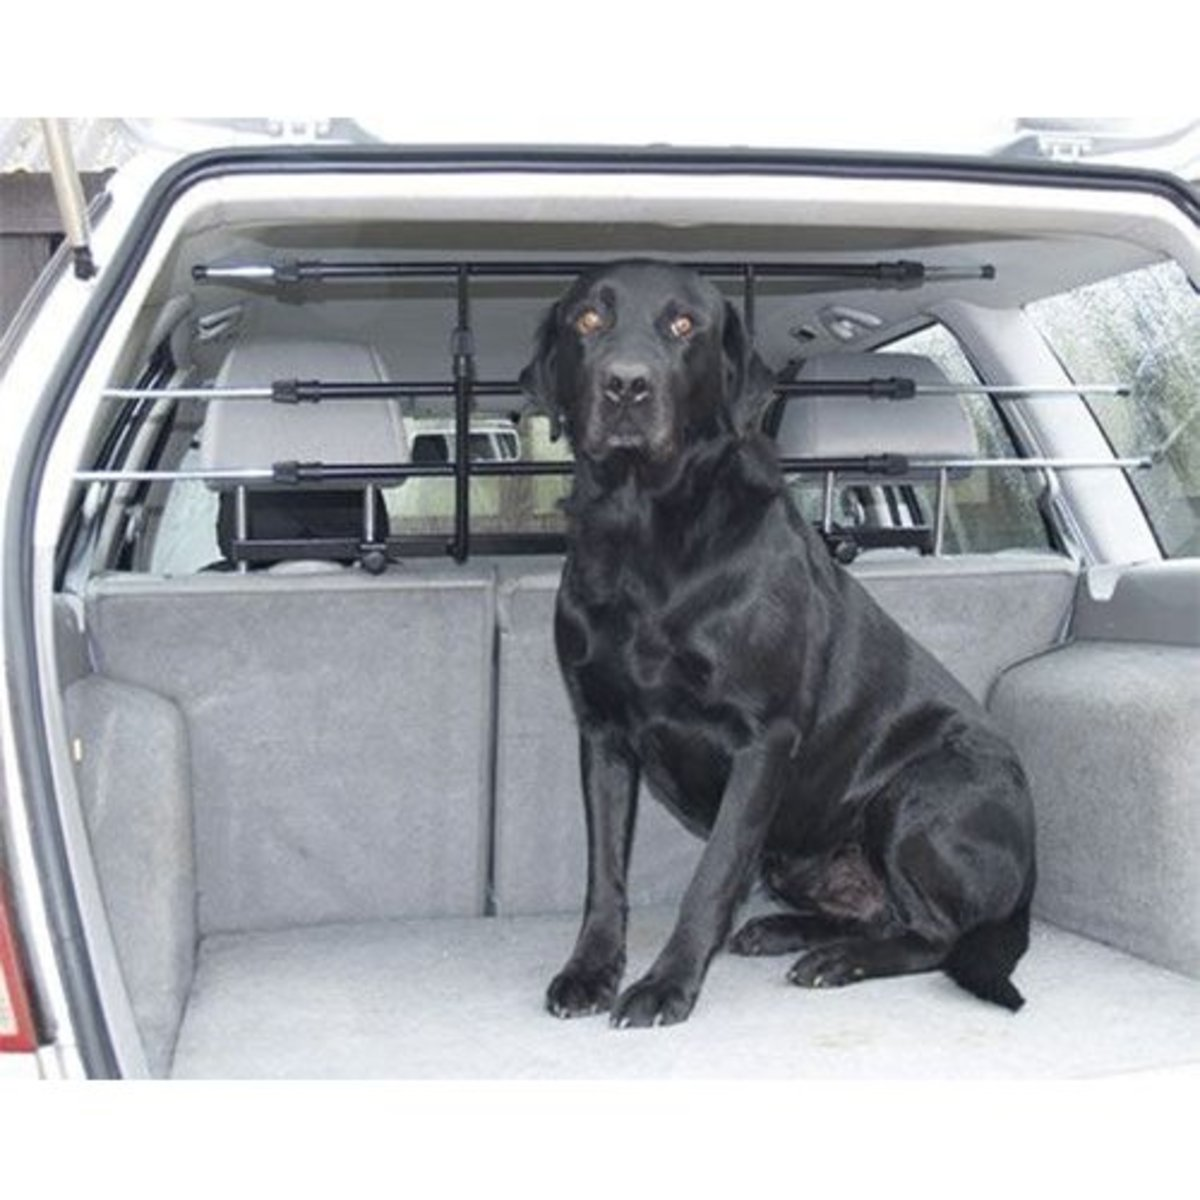 Dog Guards for Cars:  How to Find the Best Dog Car Barrier for Your Needs